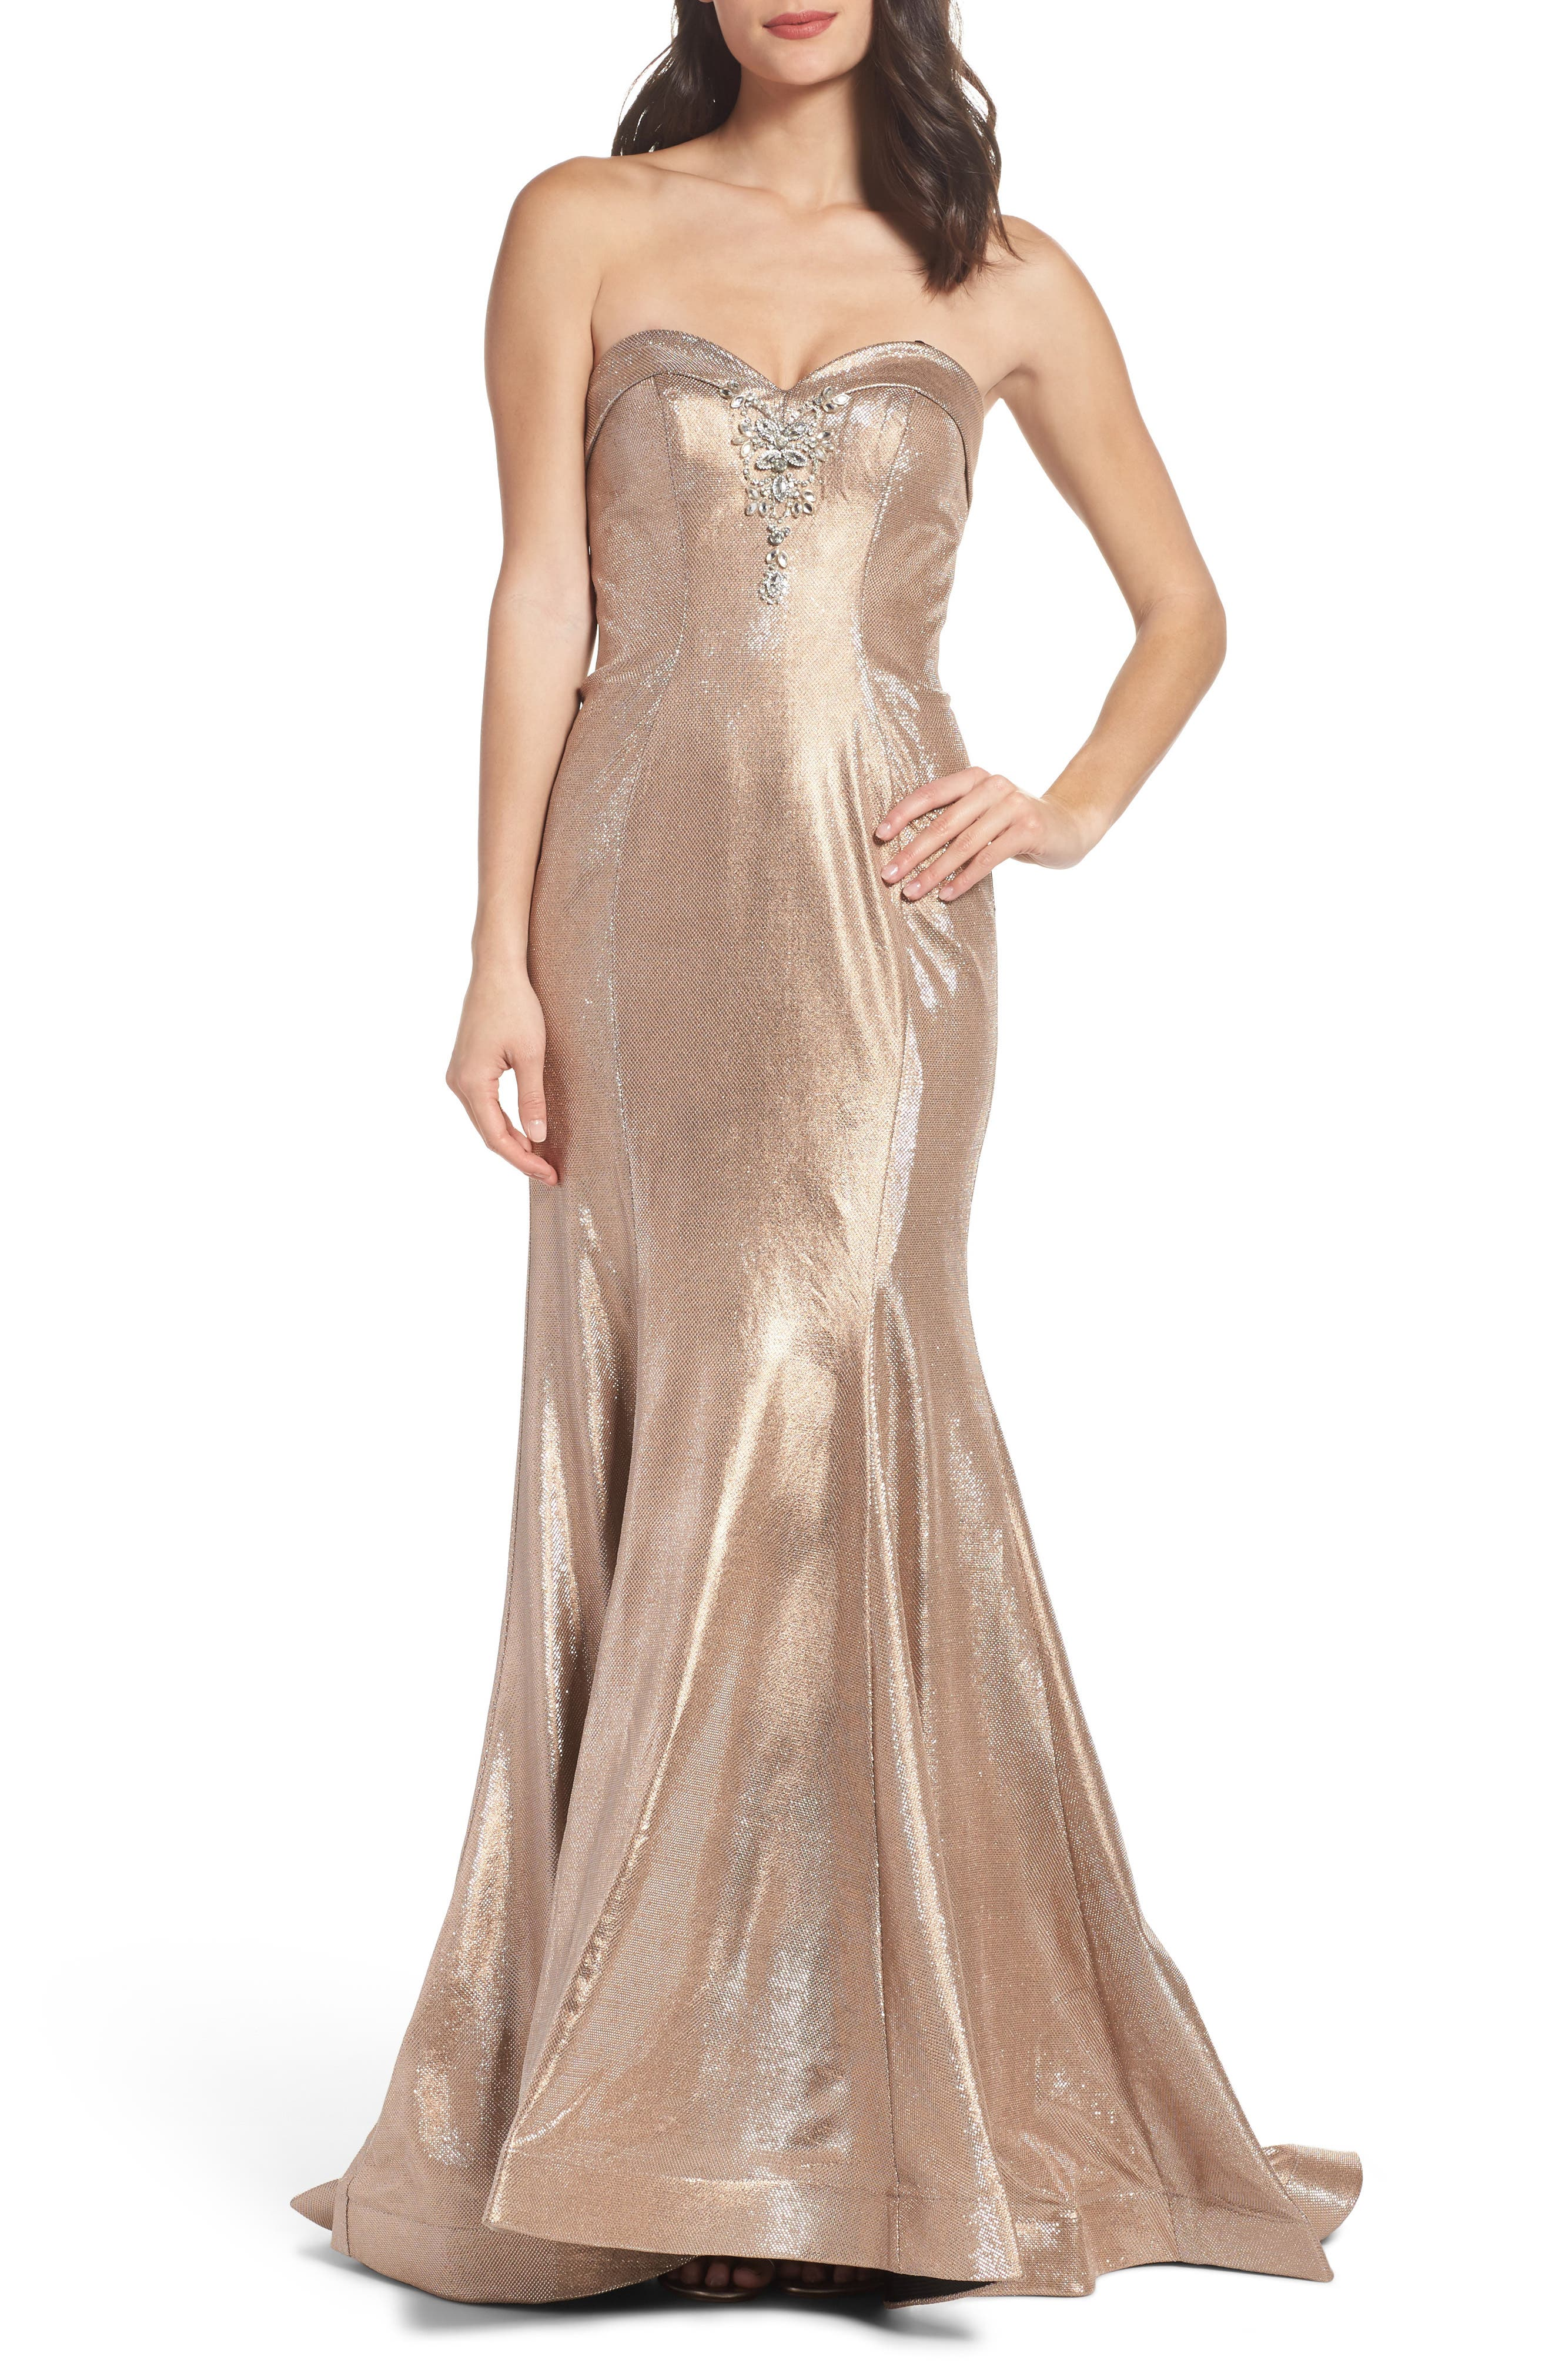 Metallic Mermaid Gown,                         Main,                         color, Nude/Silver